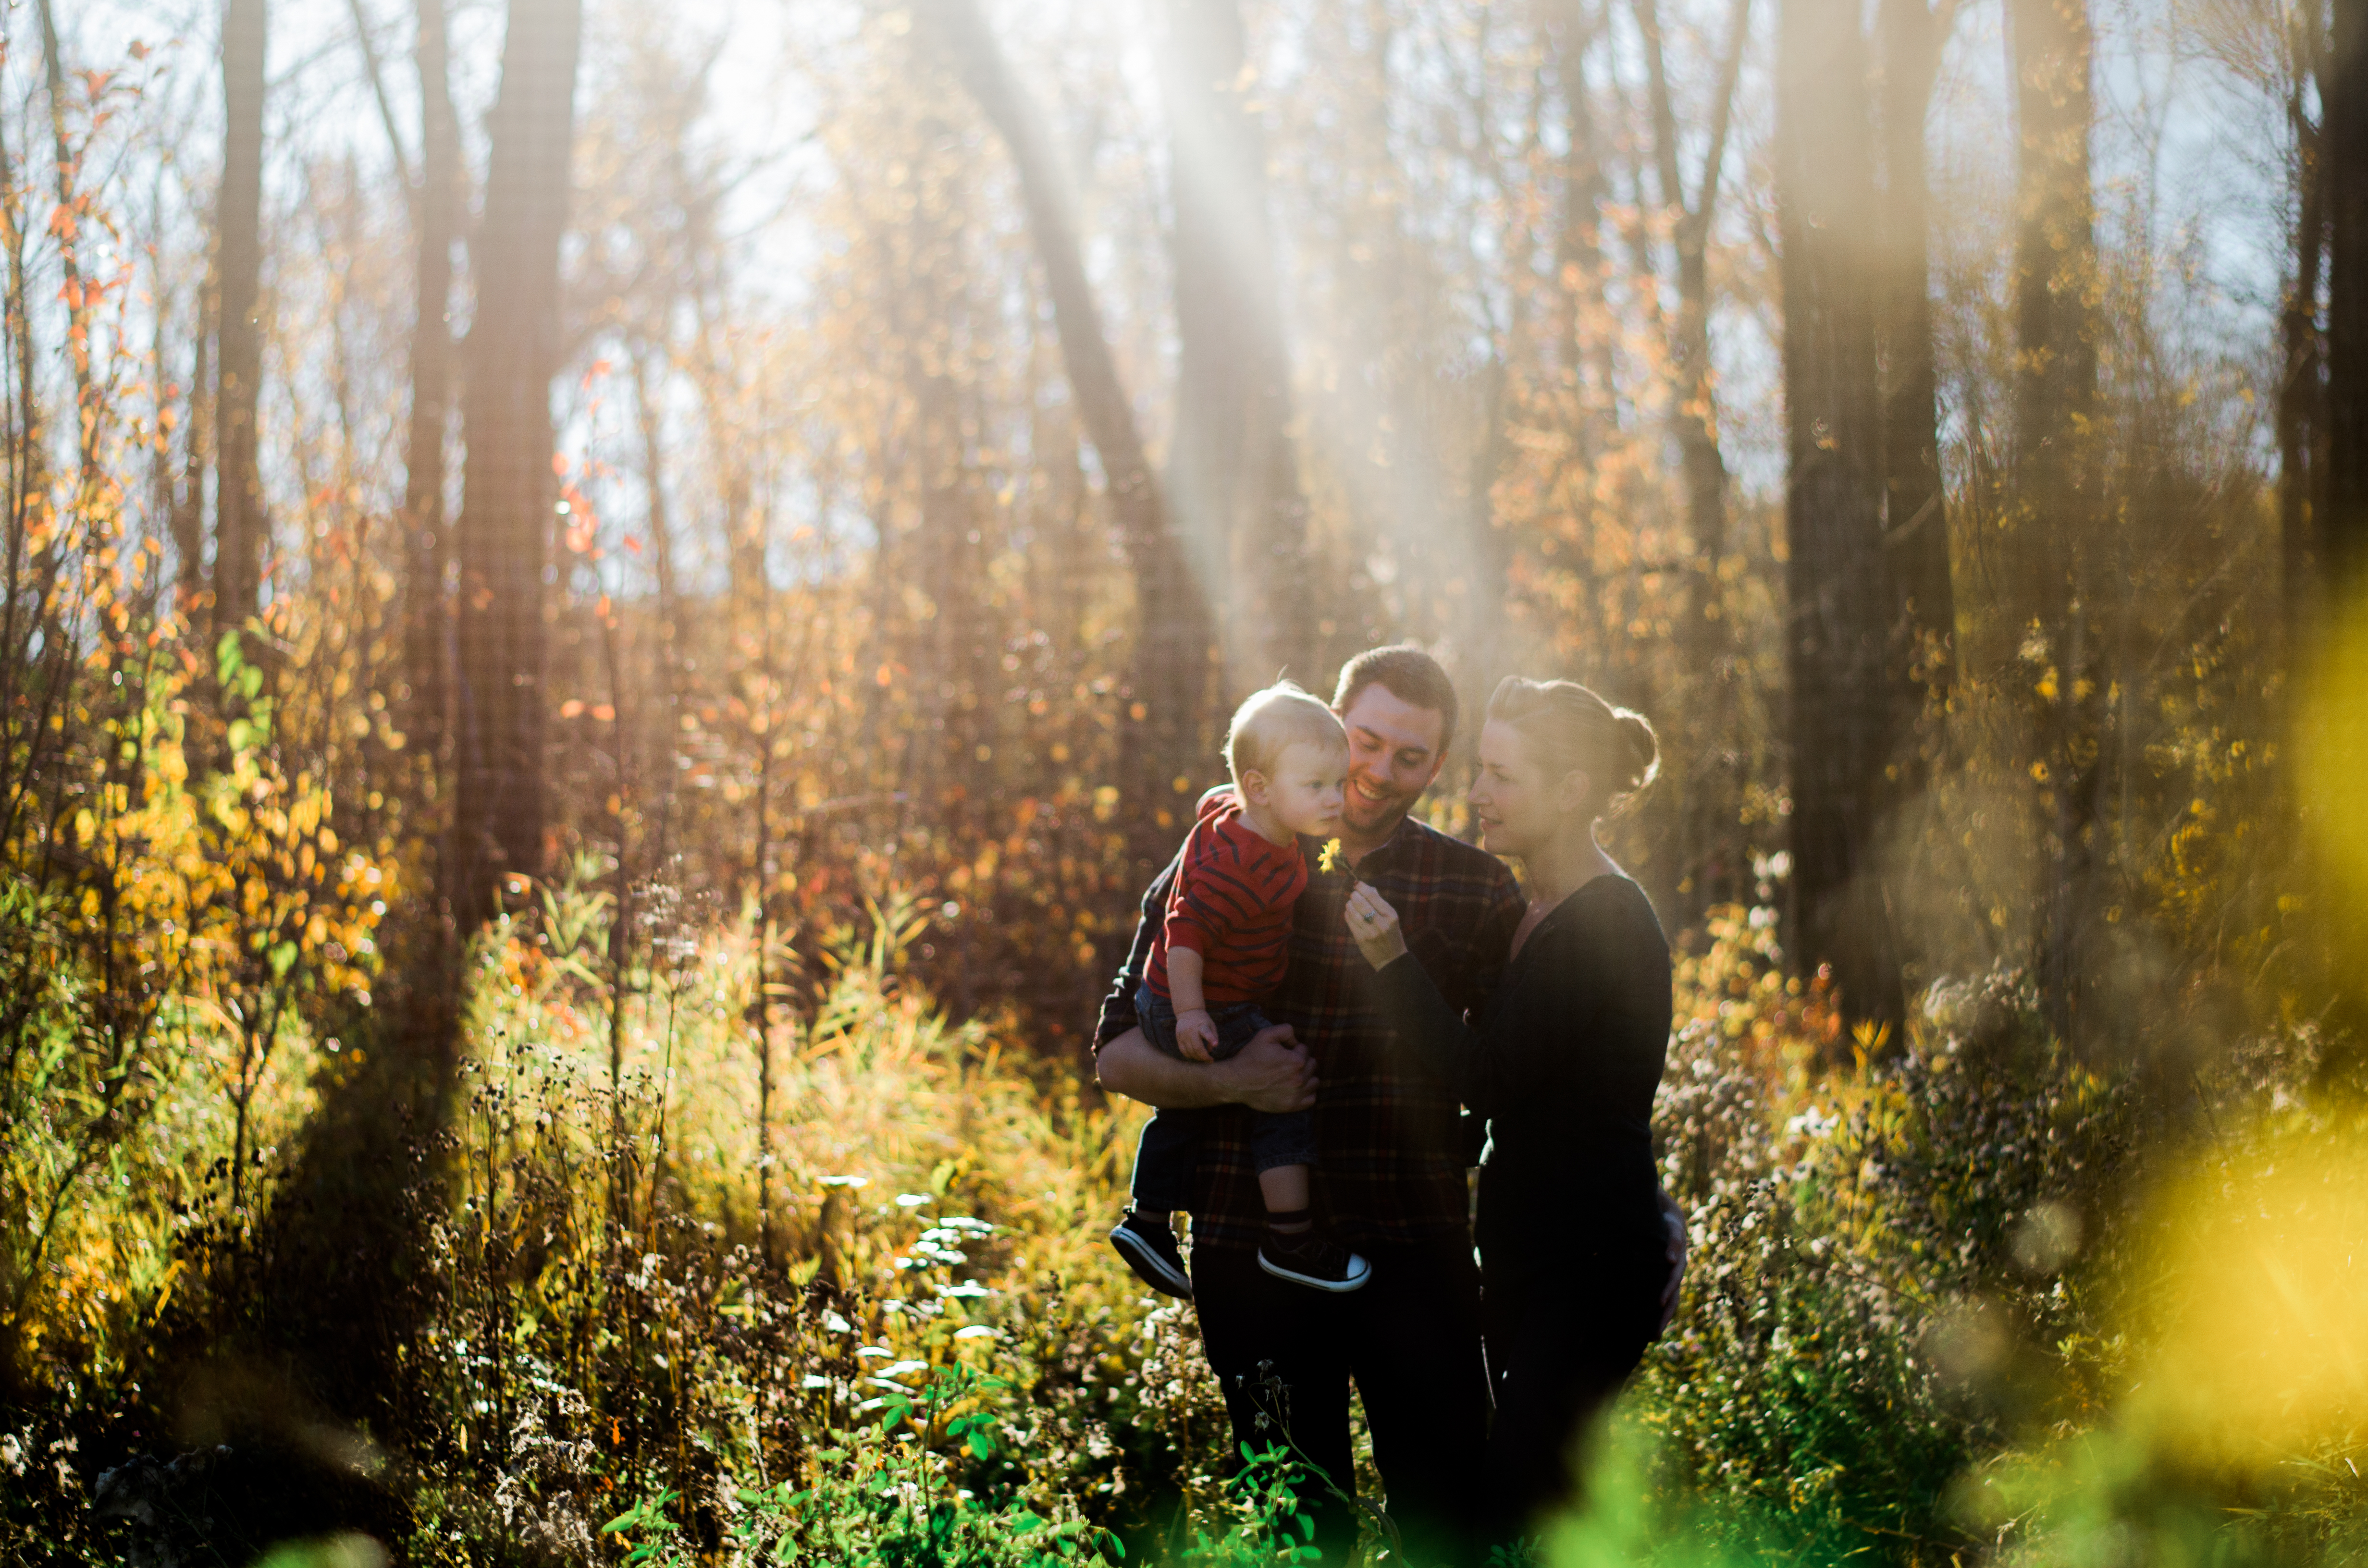 edmonton photographer yew photography fall family photo